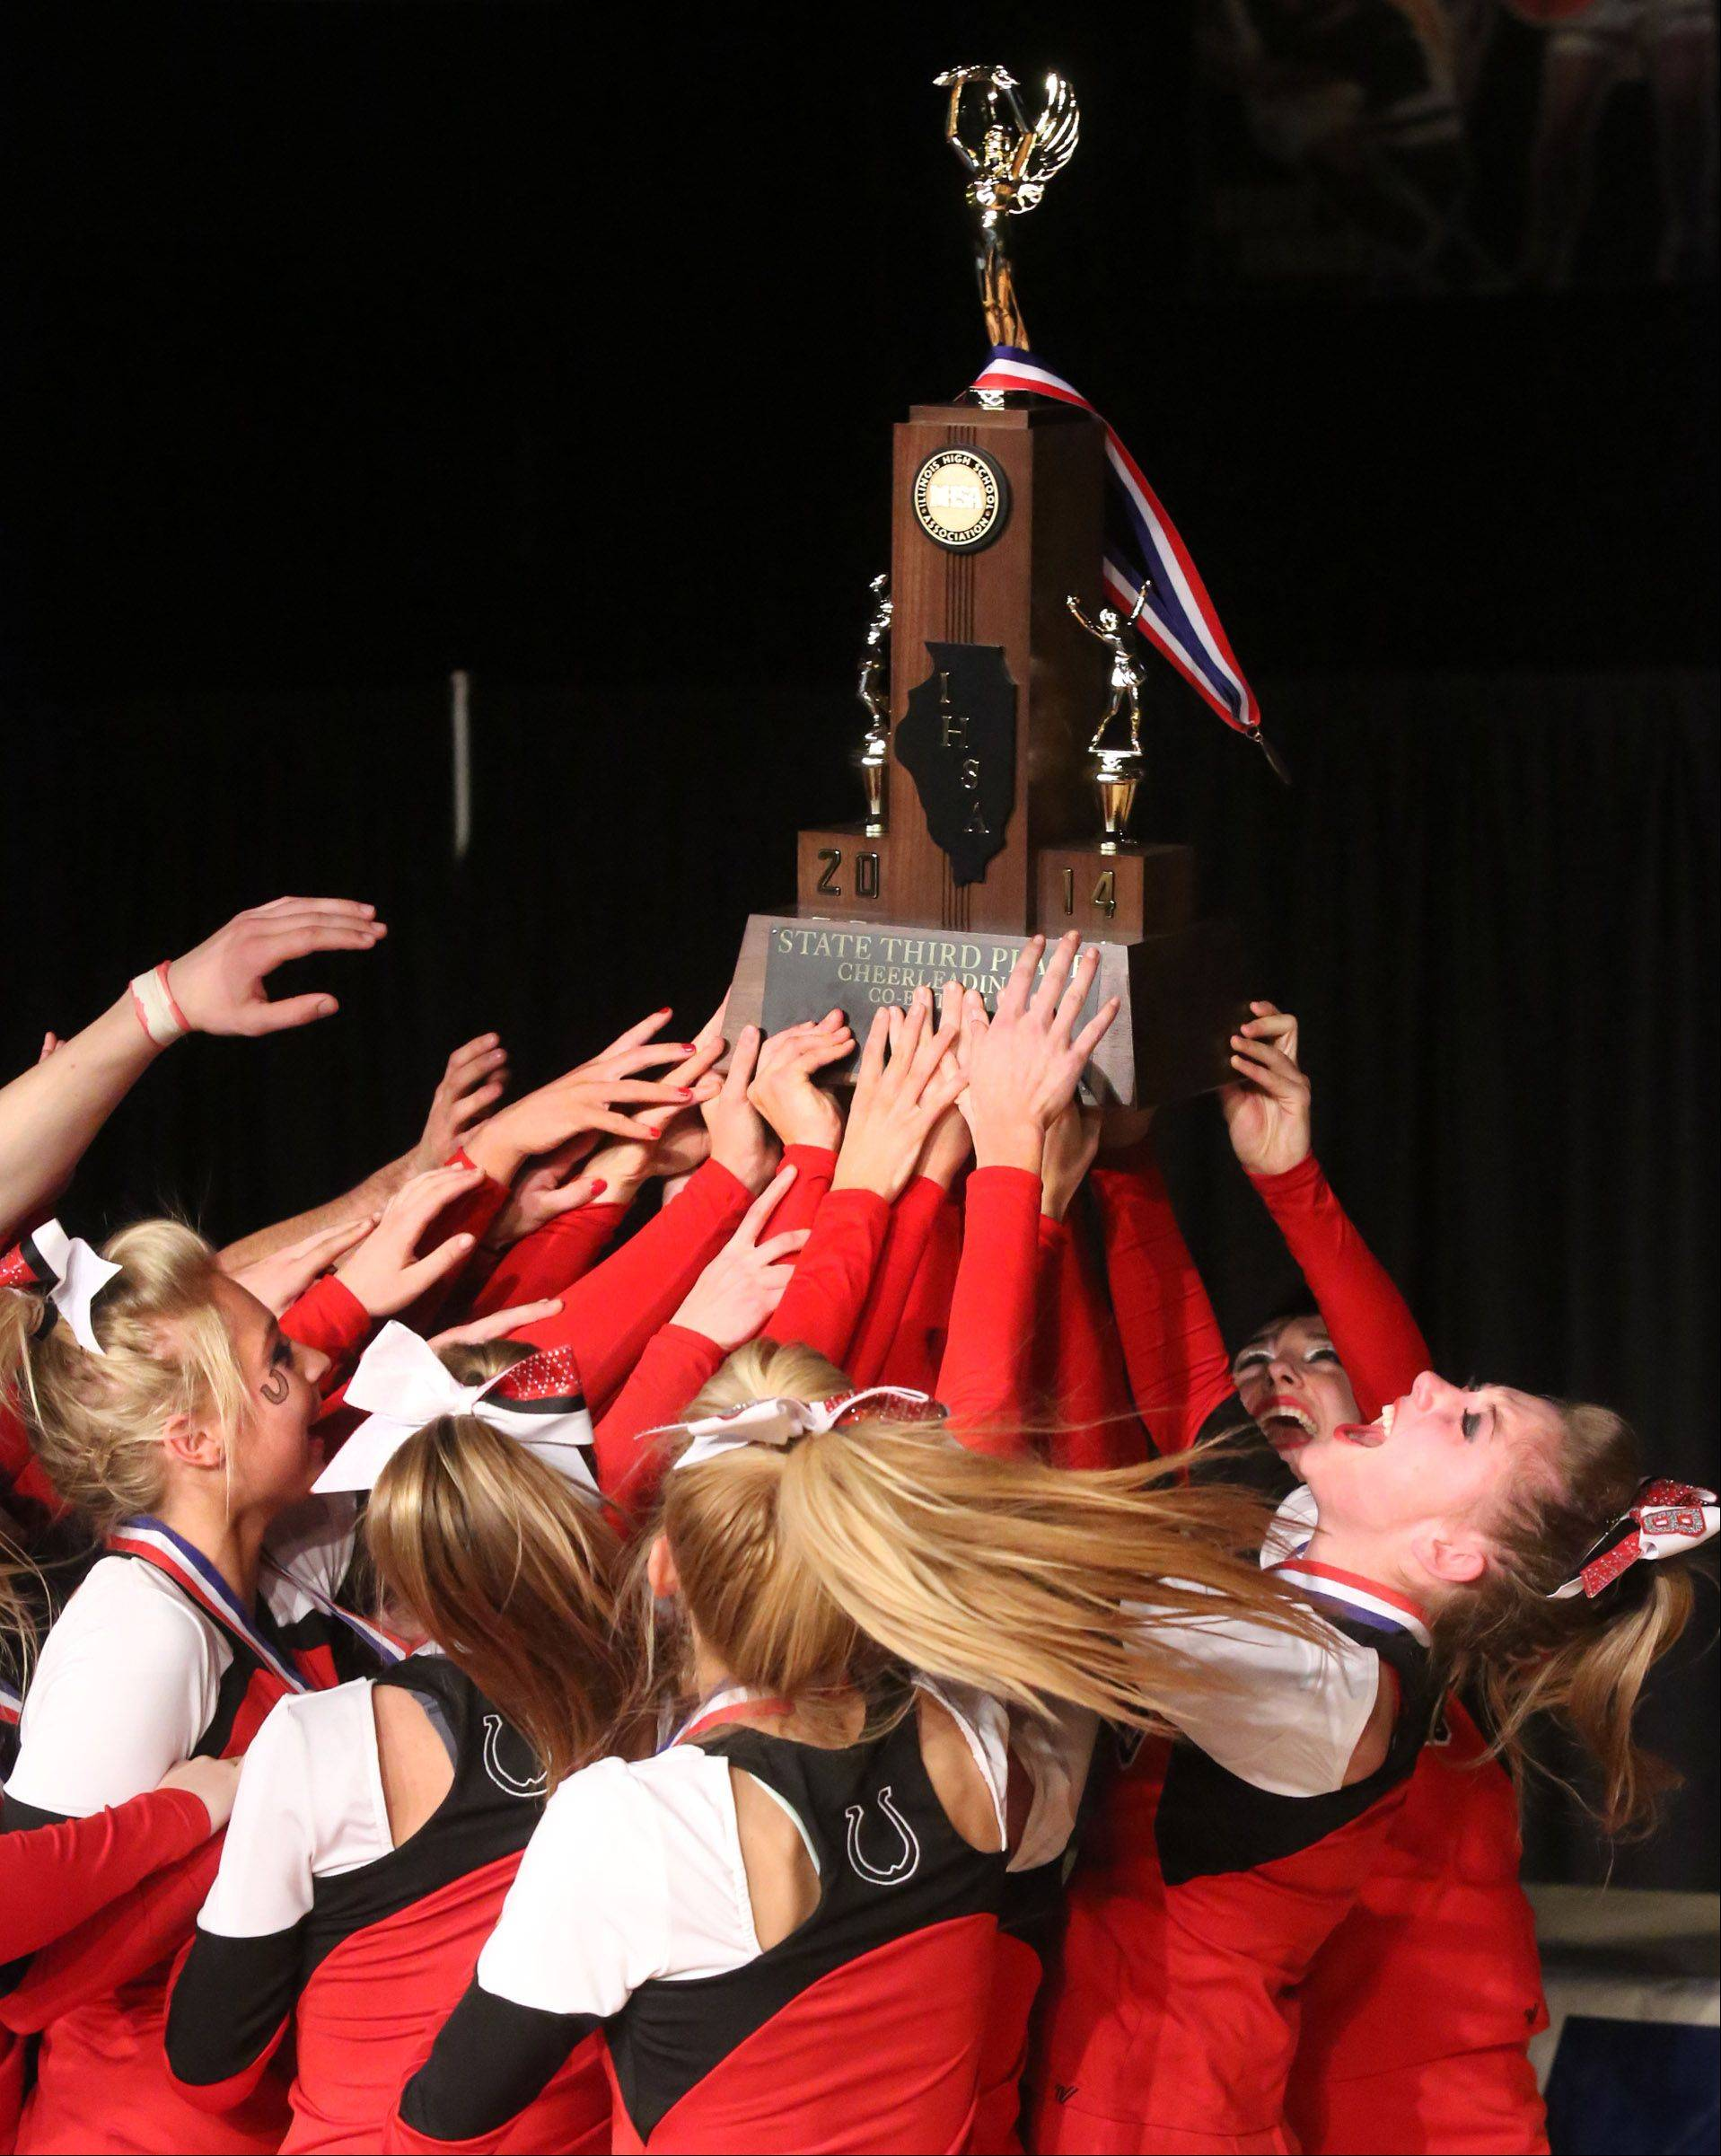 Barrington High School's cheer team celebrates taking third place in the coed team category at the IHSA state finals on Saturday in Bloomington.